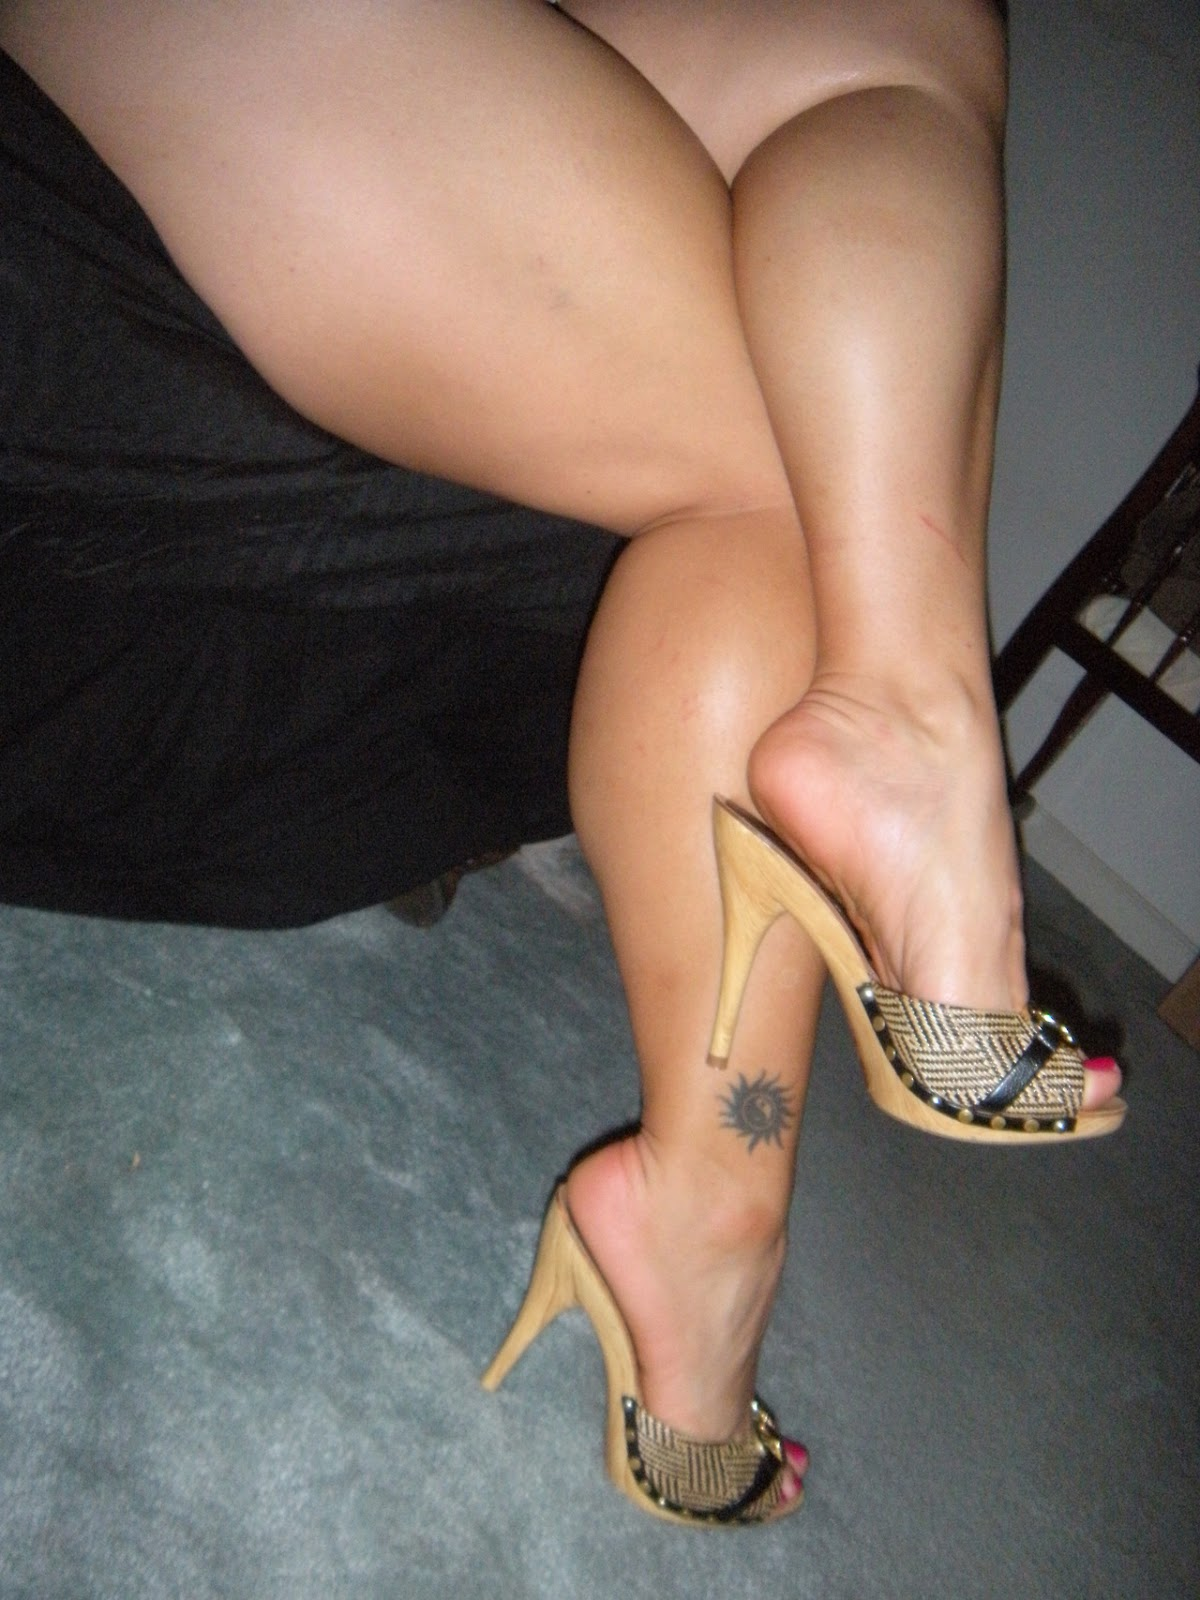 Arched soles domination footjob